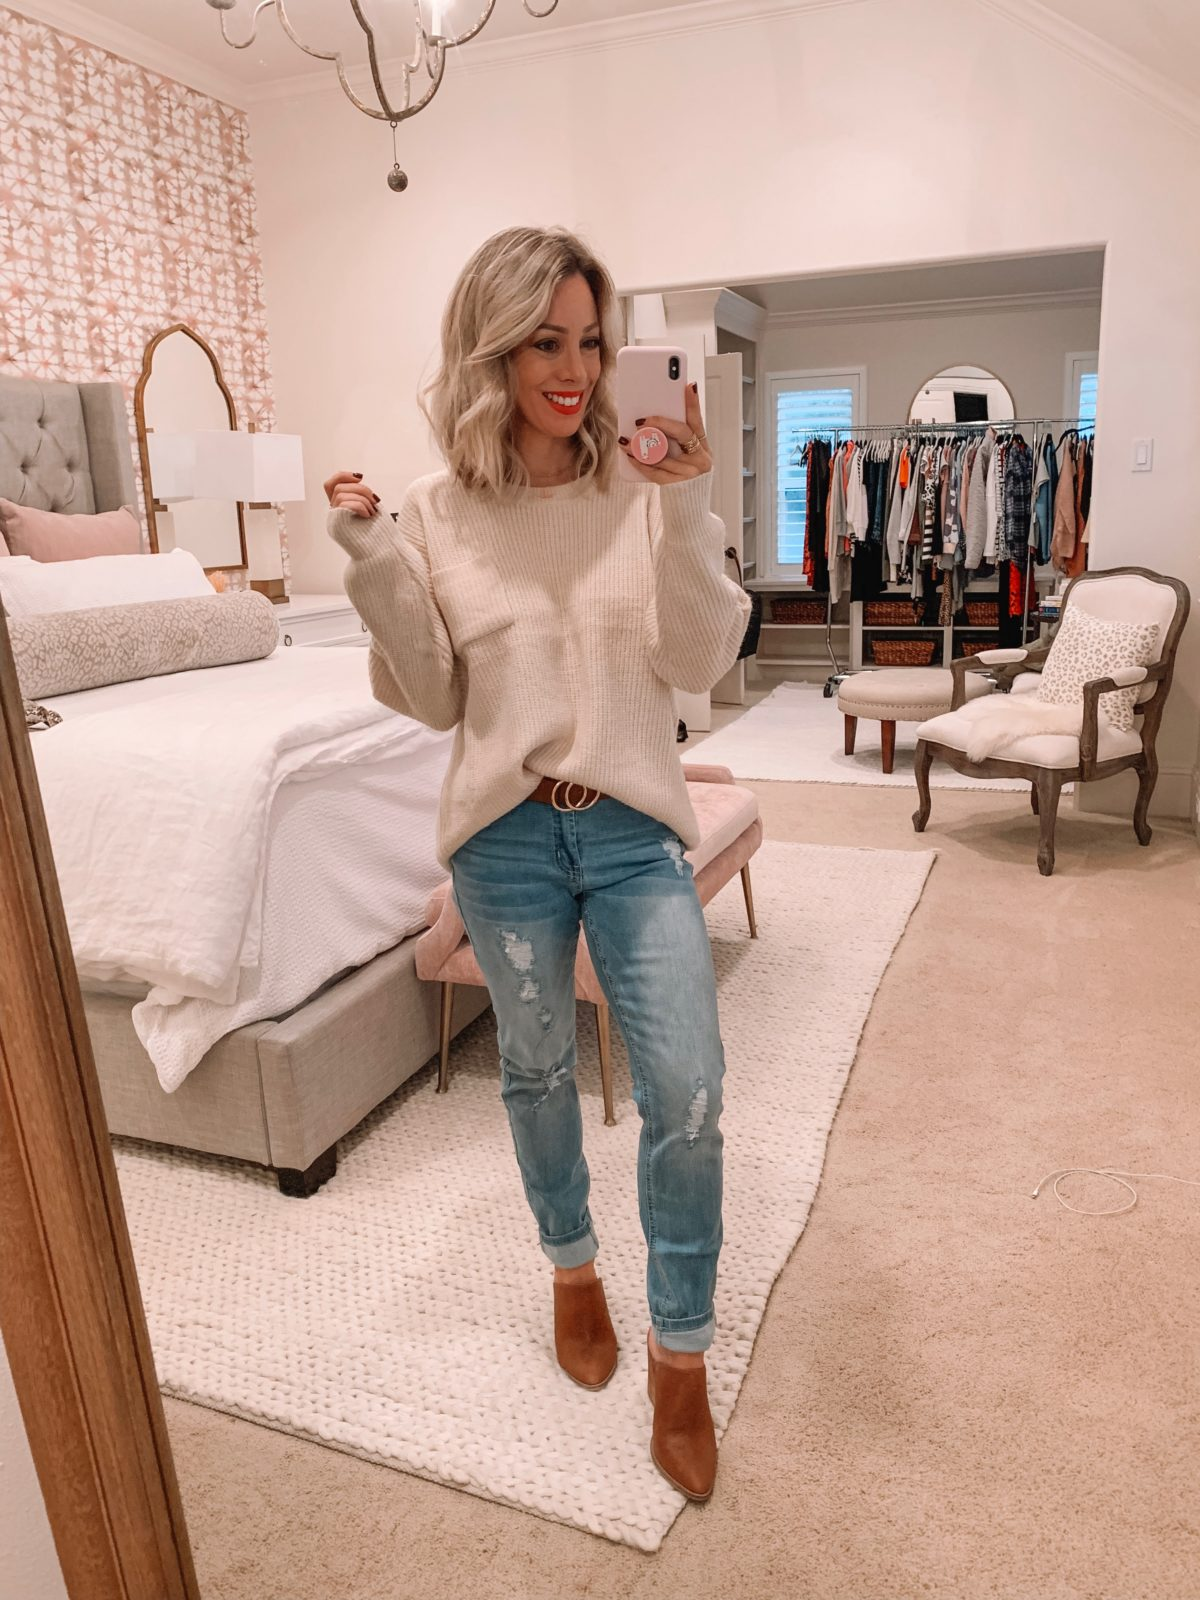 Amazon Prime Fashion-Beige Sweater with Jeans